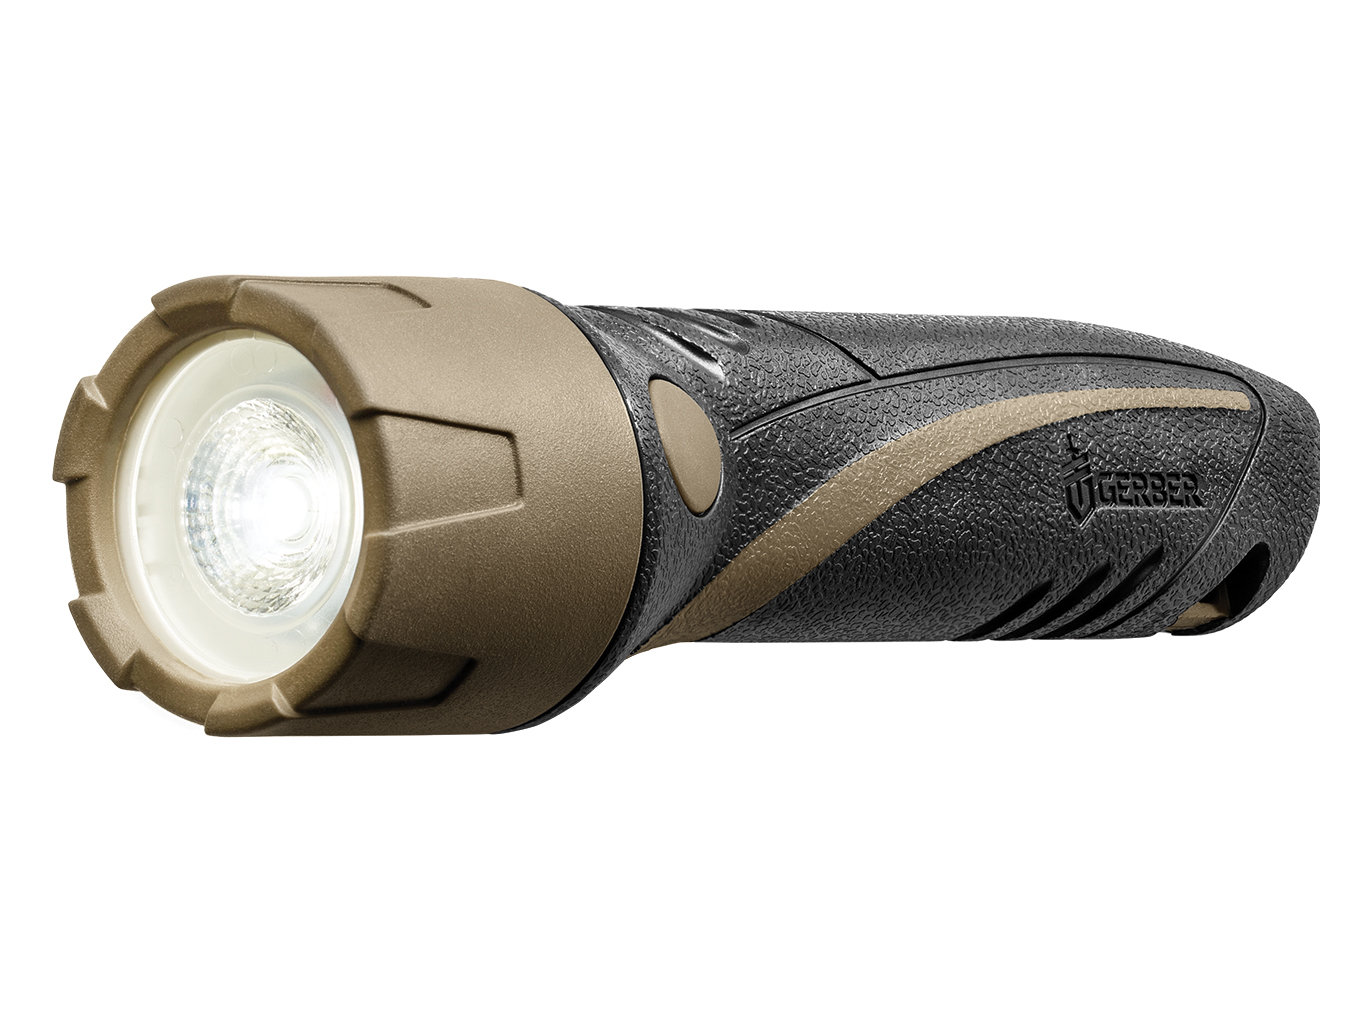 Gerber MYTH AA Flashlight - 200 Lumens (Online Only)